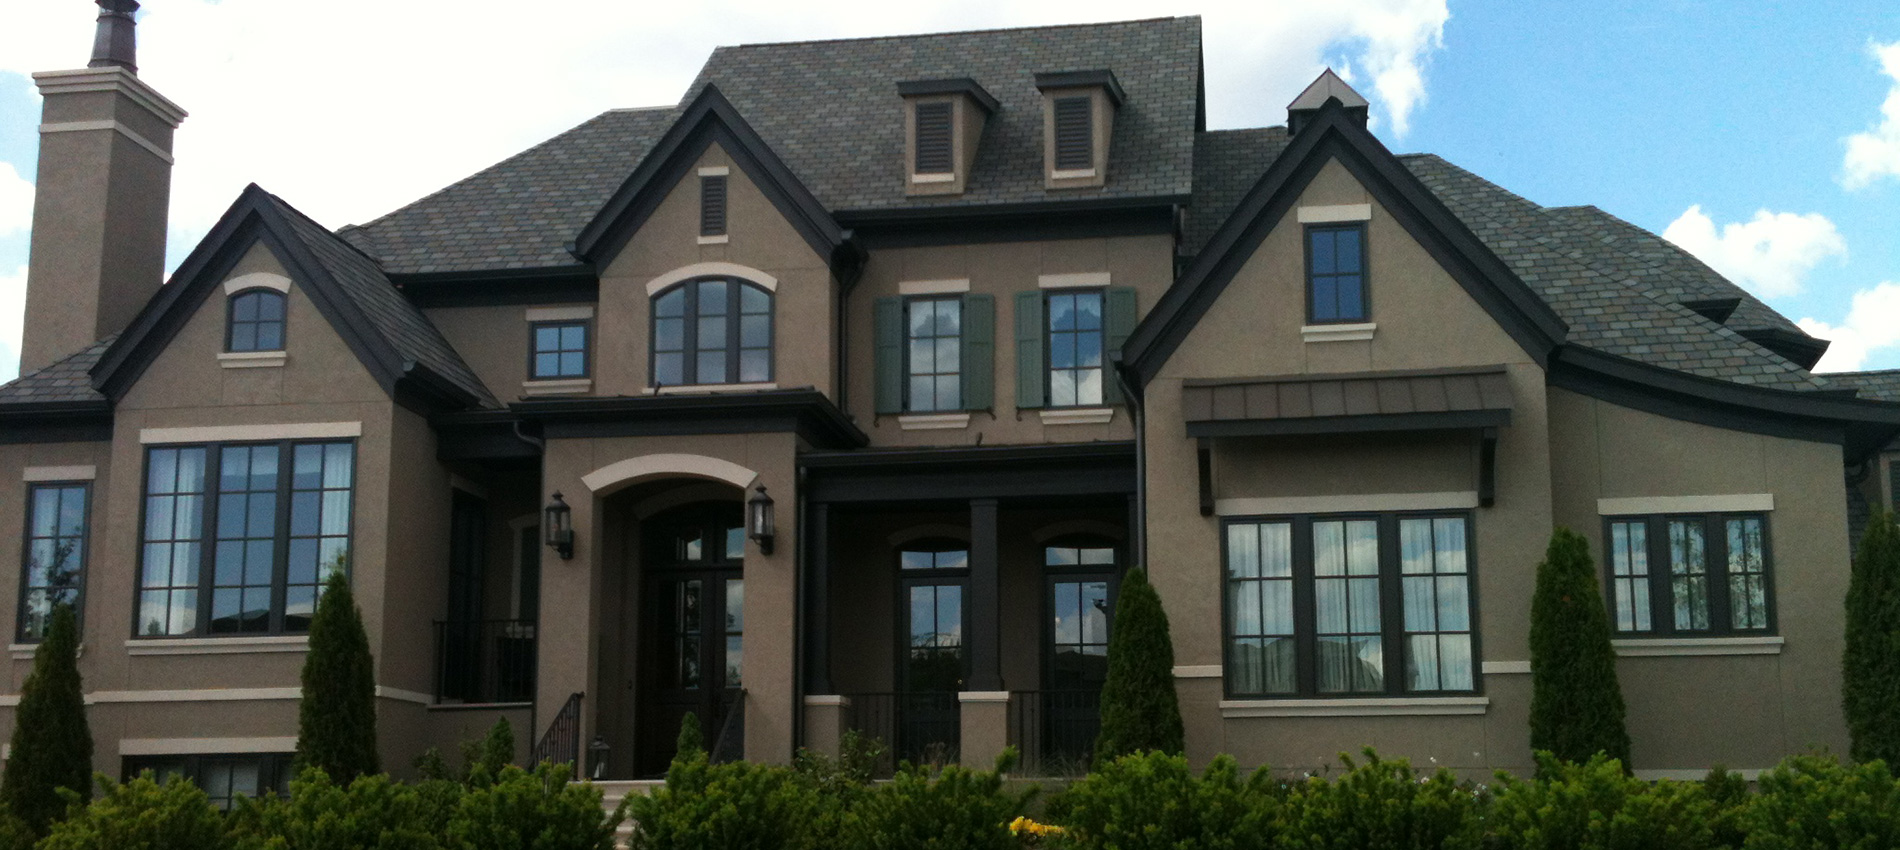 Power Washing In Franklin Tennessee Superior Washing